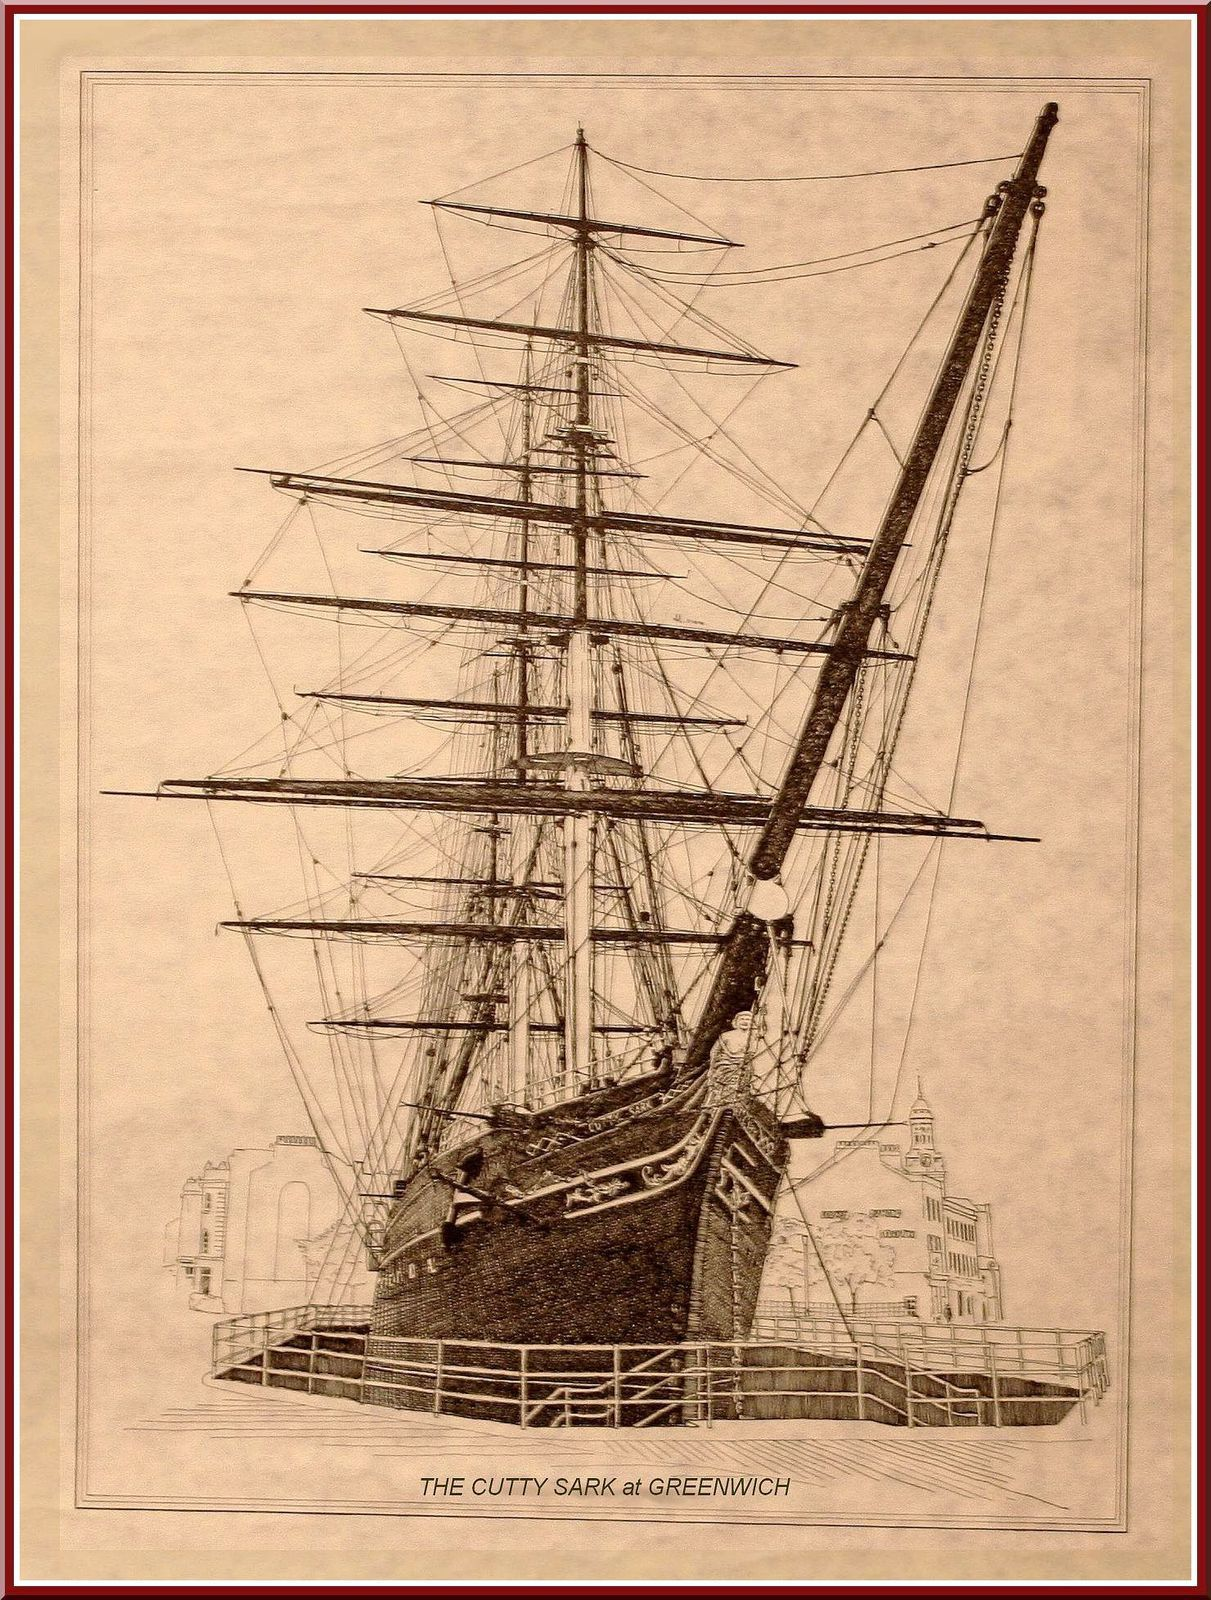 Lithographie non signée du Cutty Sark, collection privée.